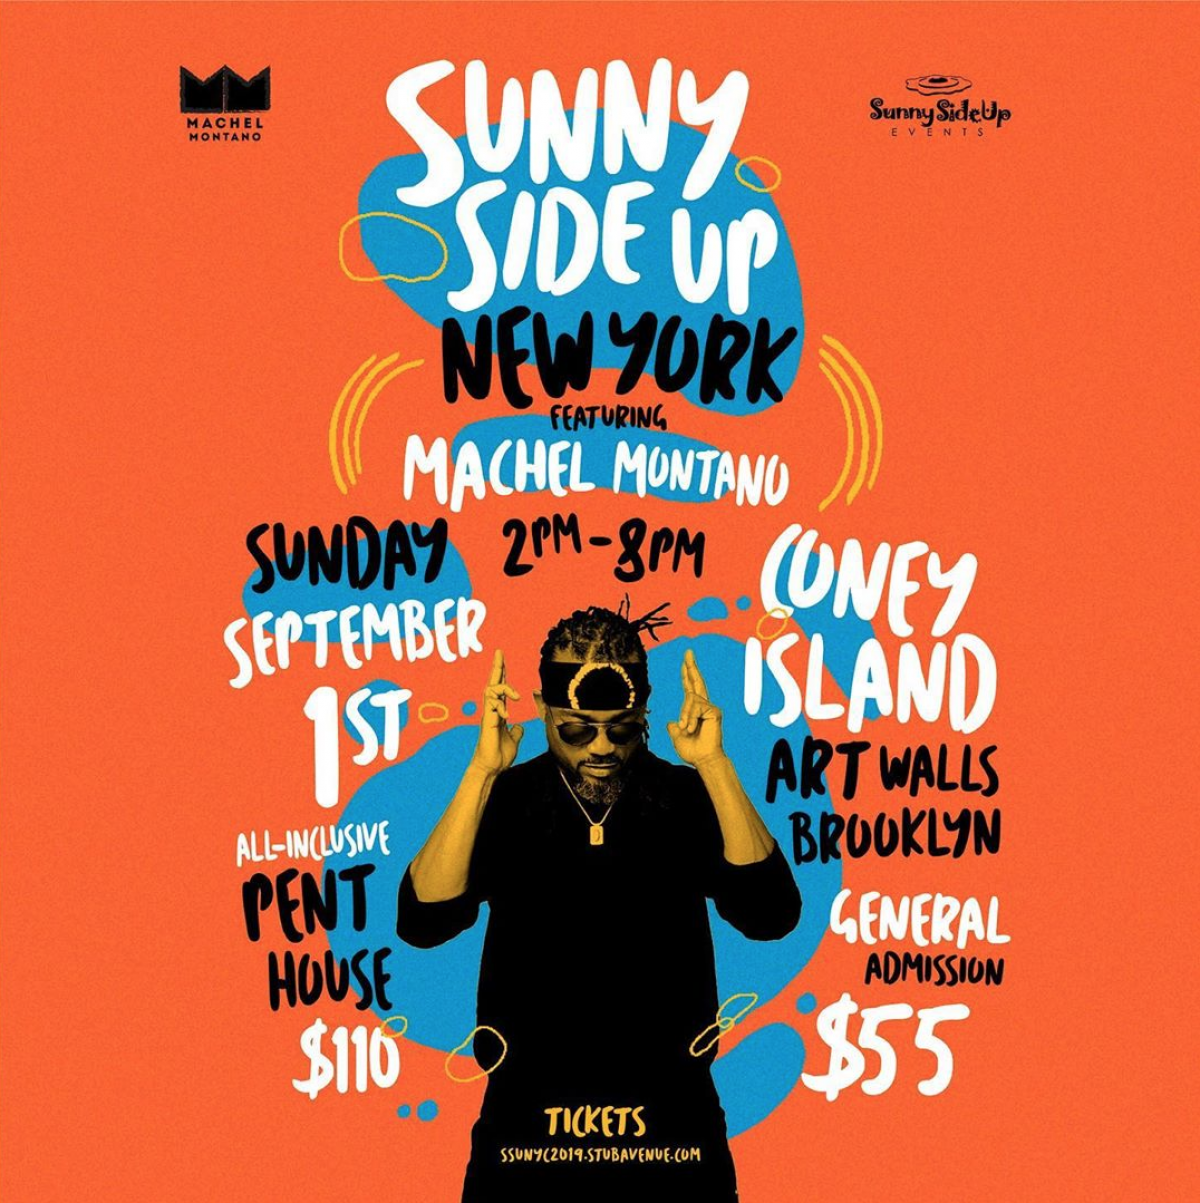 Sunny Side Up New York flyer or graphic.